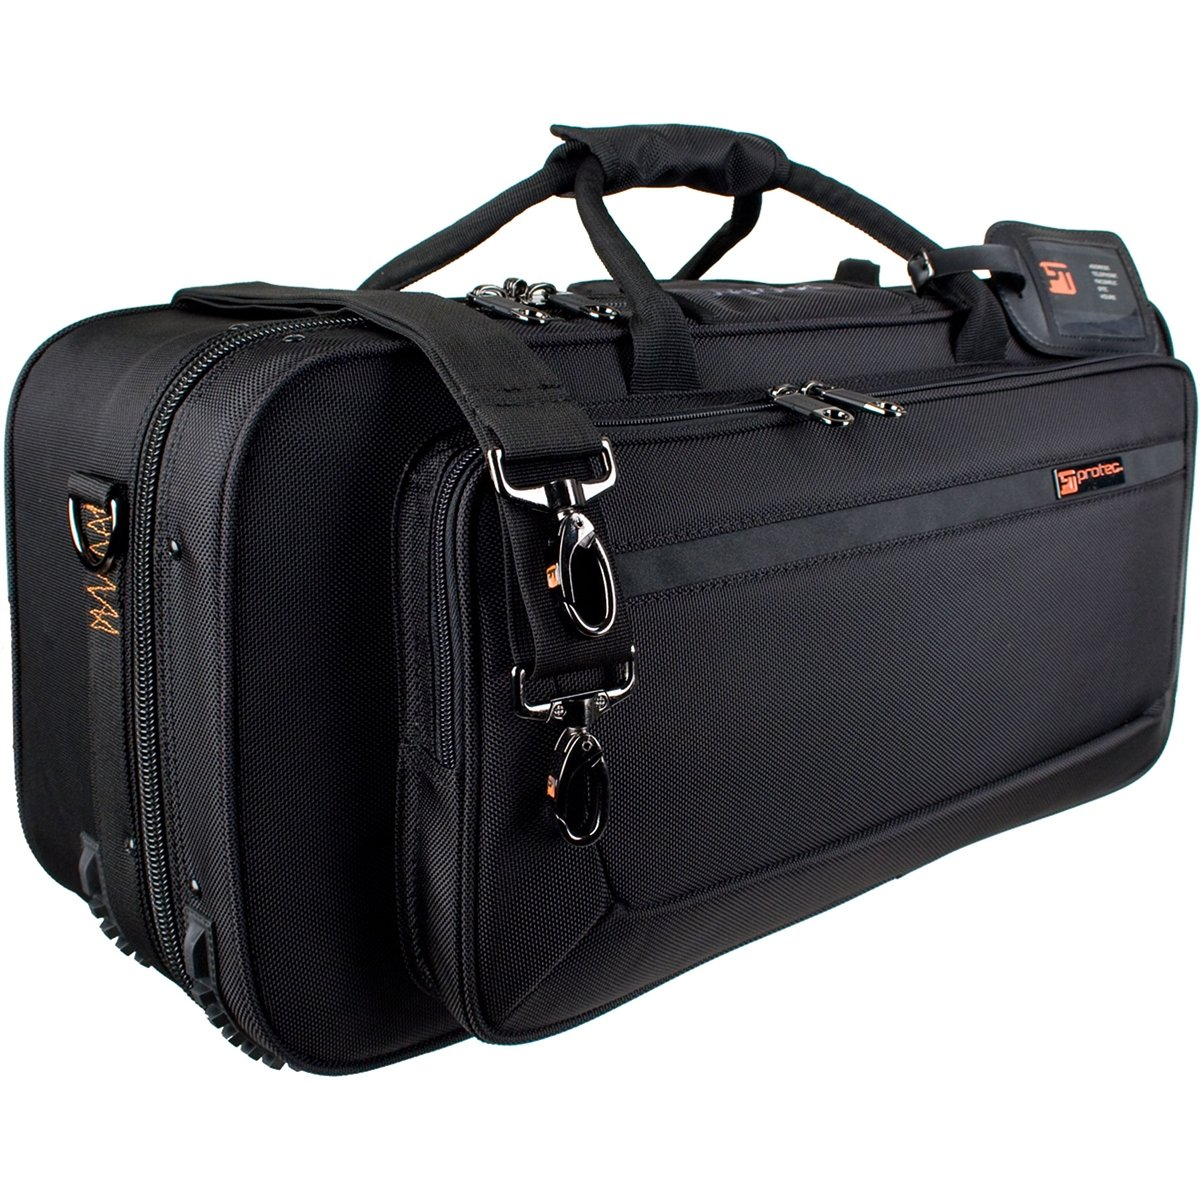 Protec Pro Pac Trumpet Case w/ Mute Section